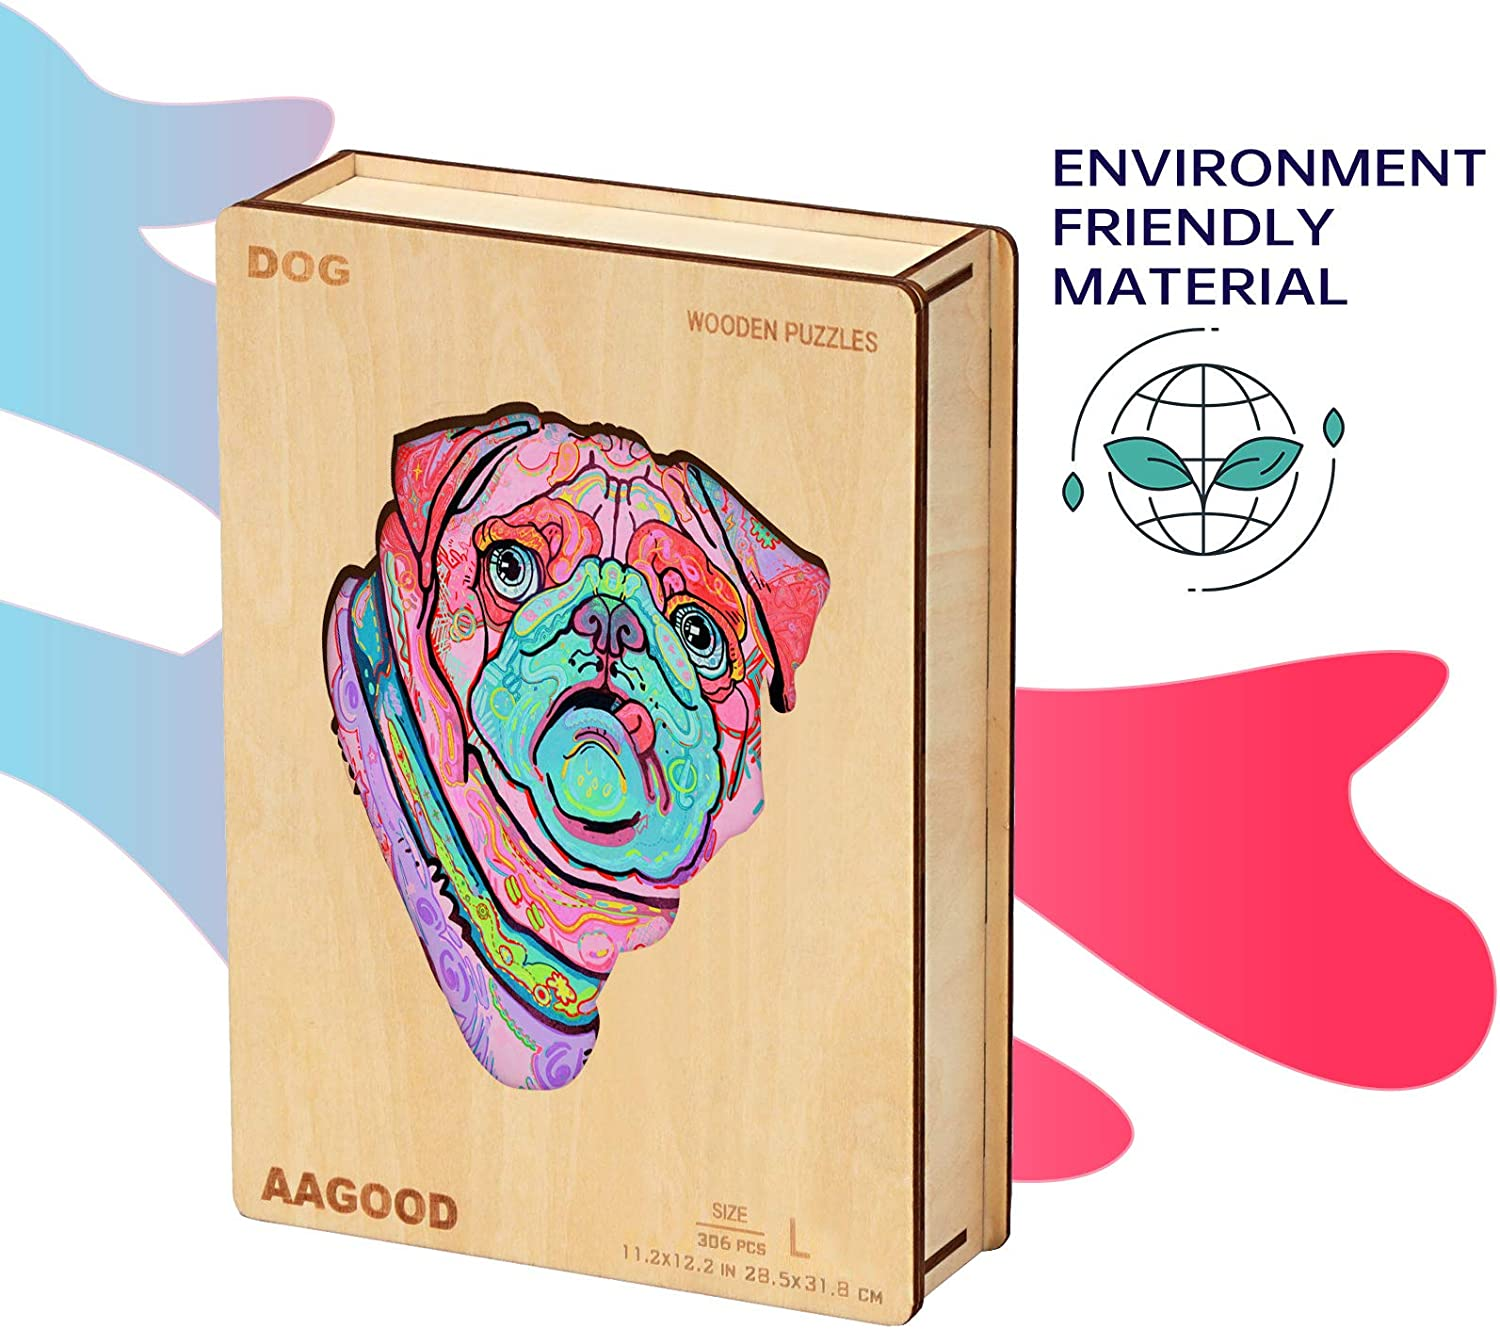 5.5/×6.3 inches AAGOOD Wooden Jigsaw Puzzle for Adults 106 Pieces pro Small Best Gift for Adults and Kids Unique Shape Jigsaw Pieces Dog